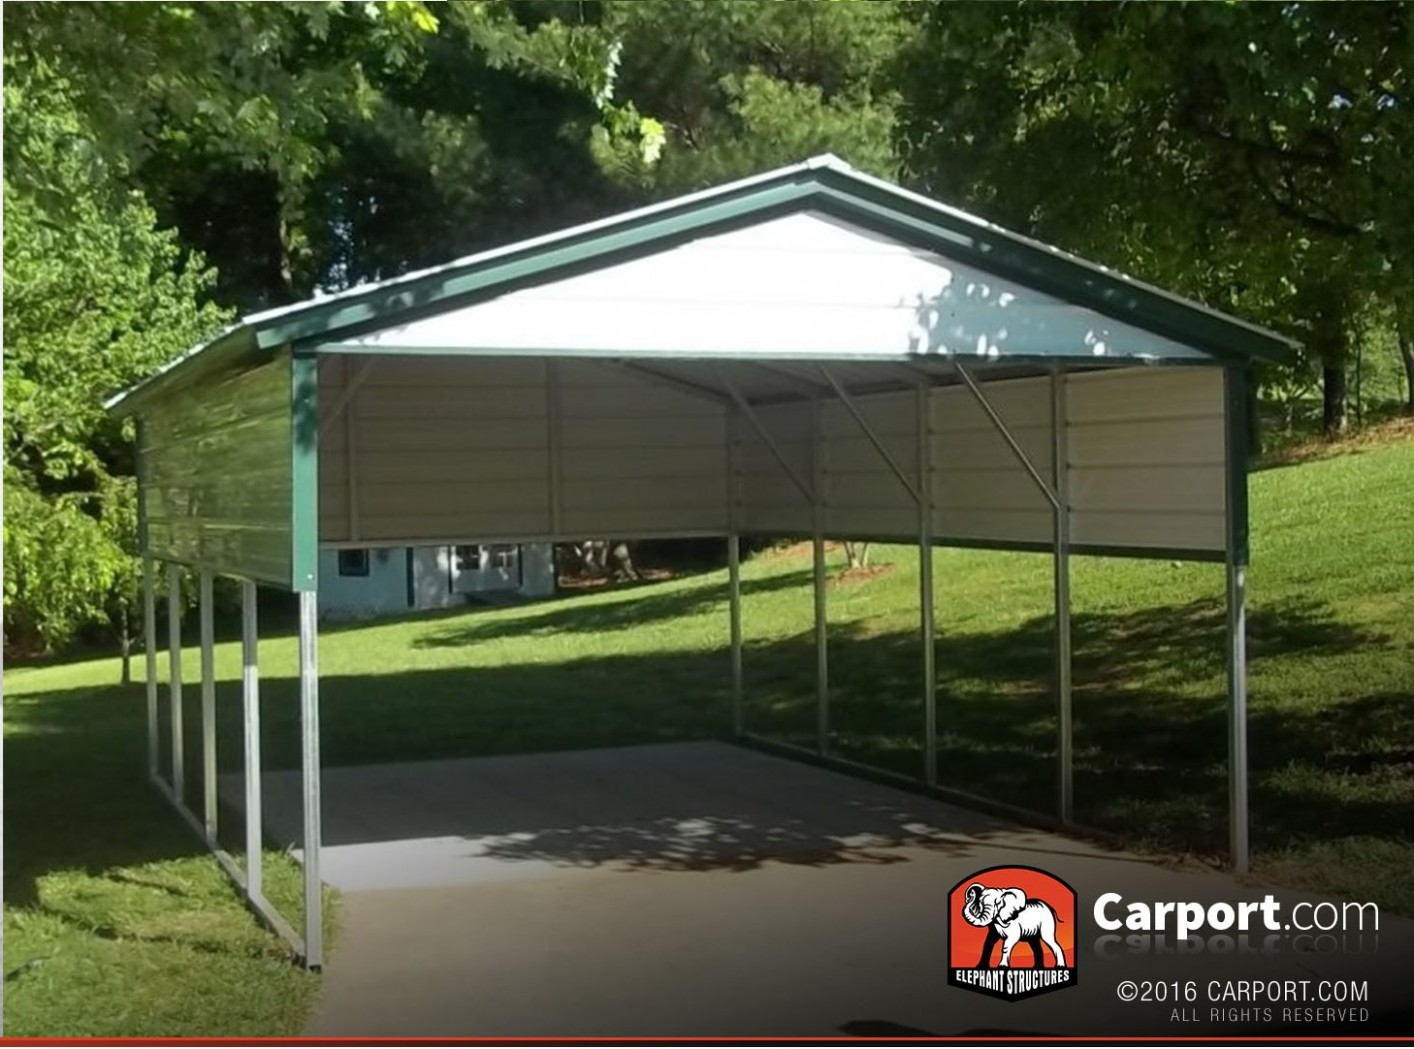 Here's Why You Should Attend 1111 Car Carport | 11 car carport